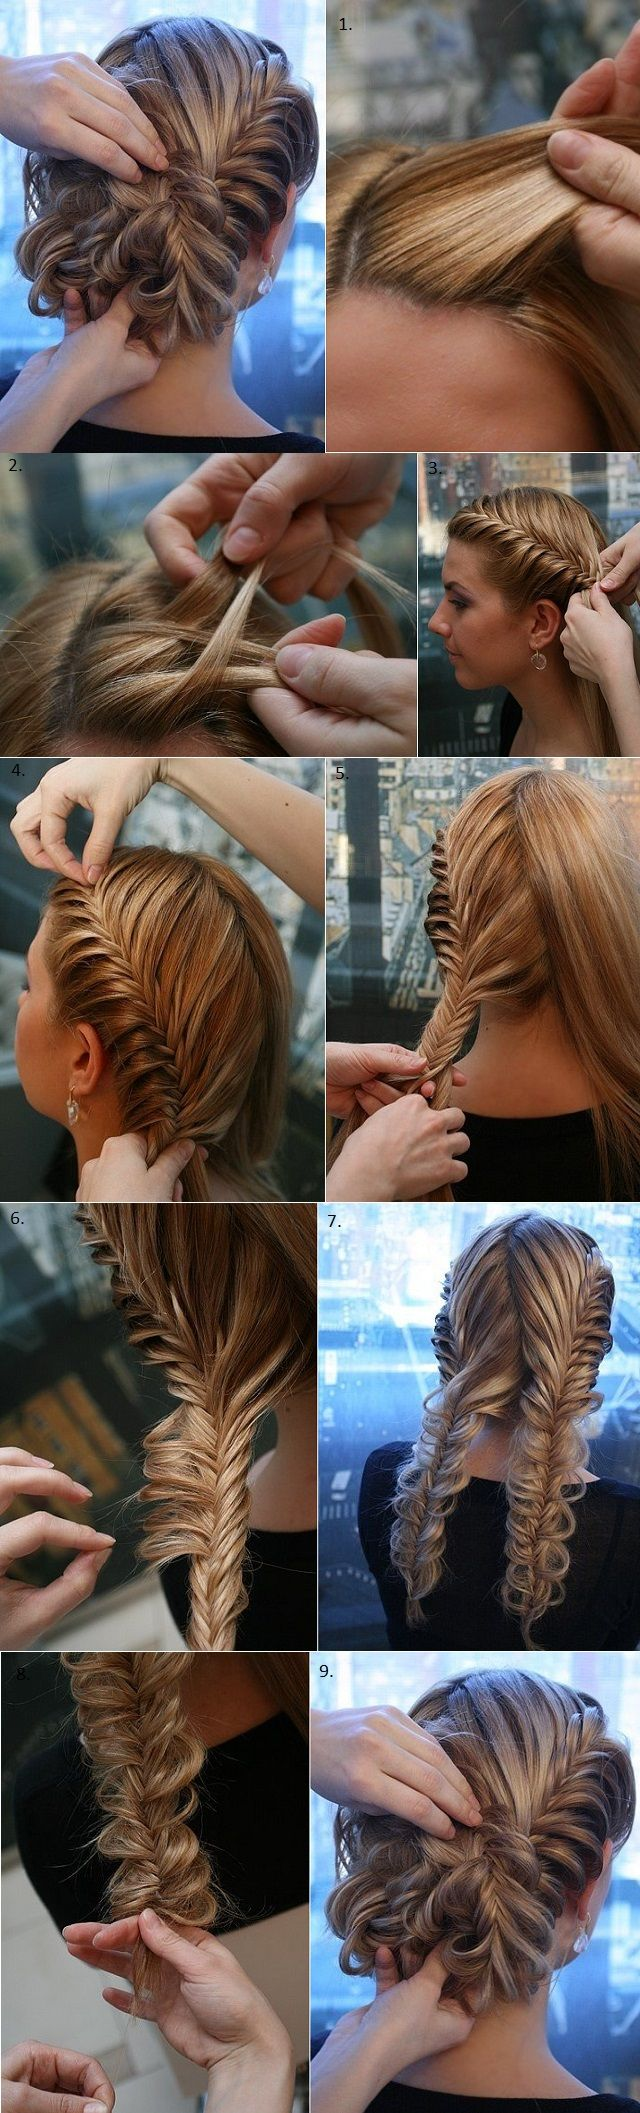 Vintage style hair! This is soooooo pretty!!!